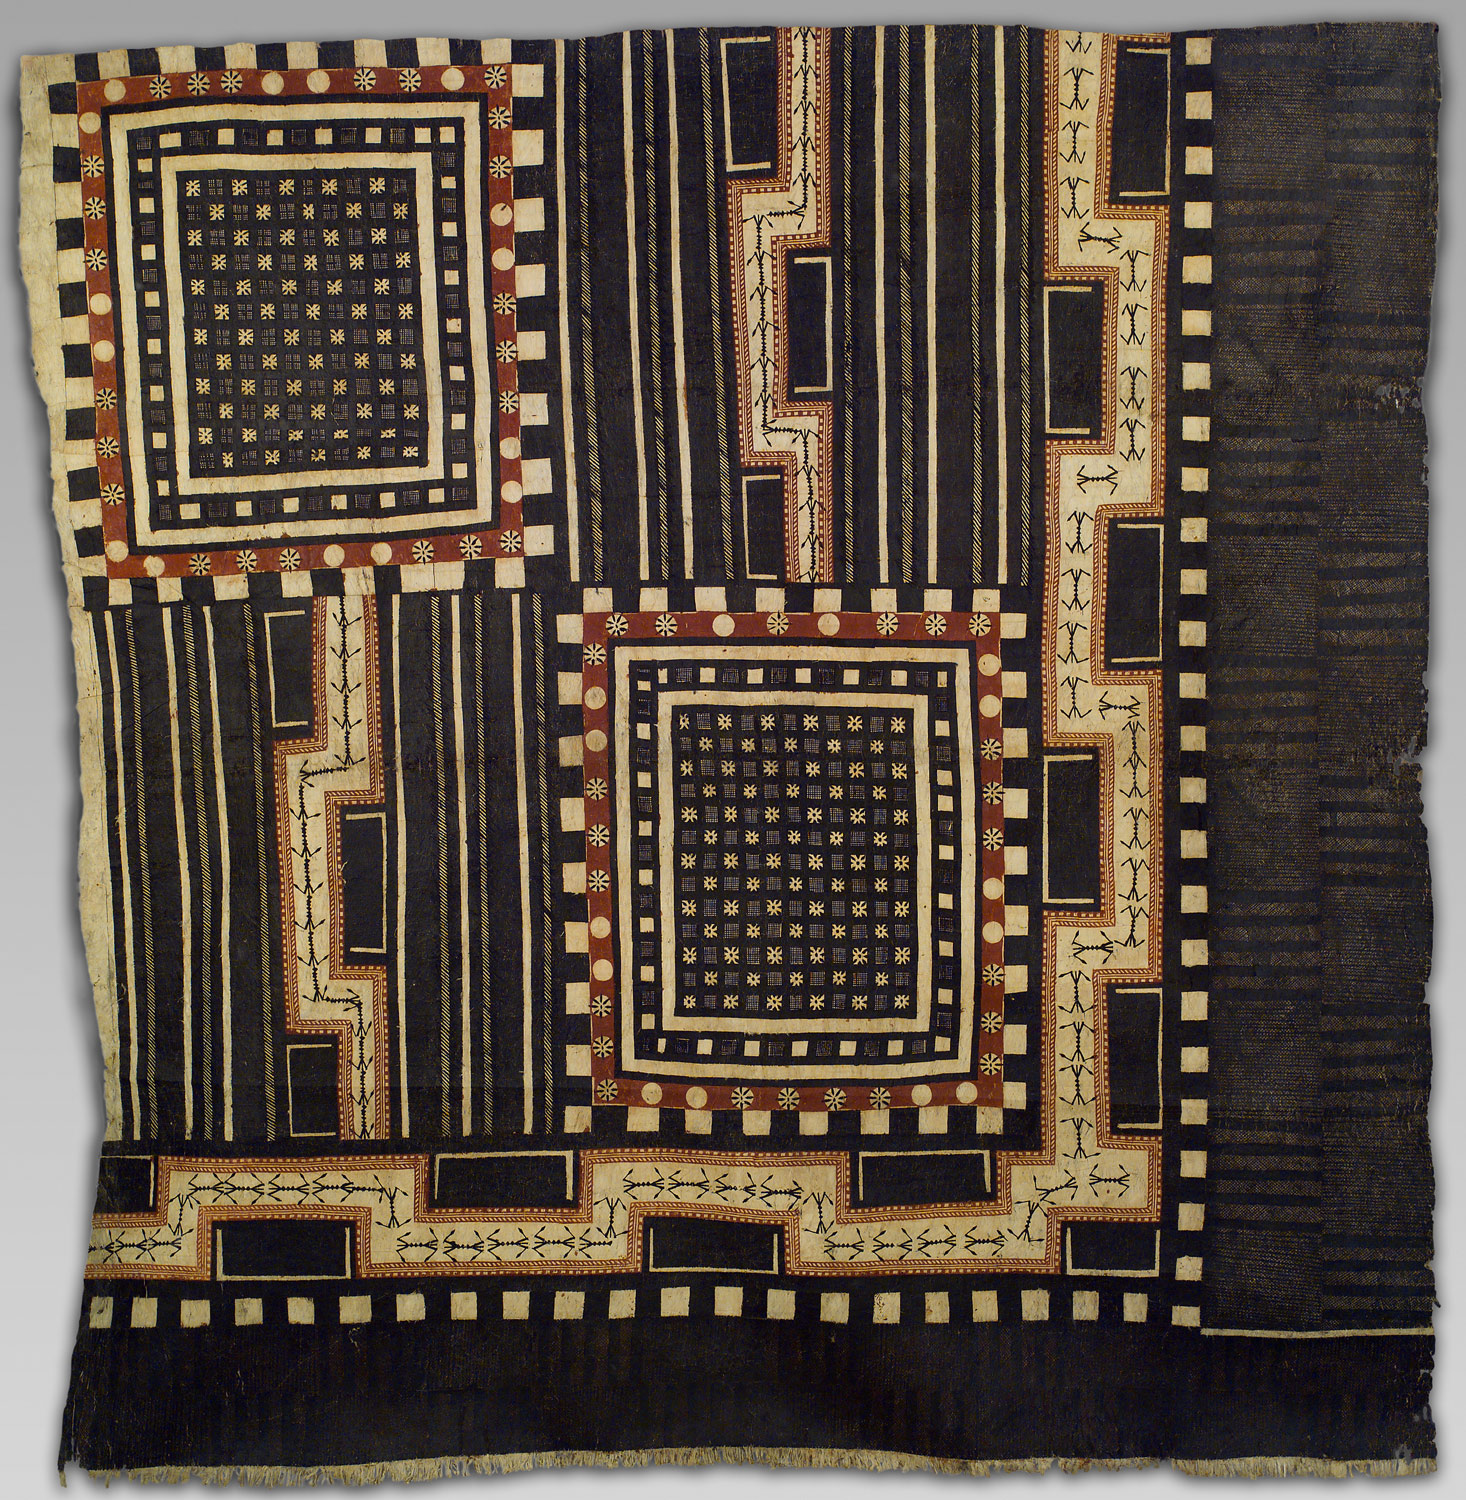 Bark Cloth Panel (Masi Kesa)